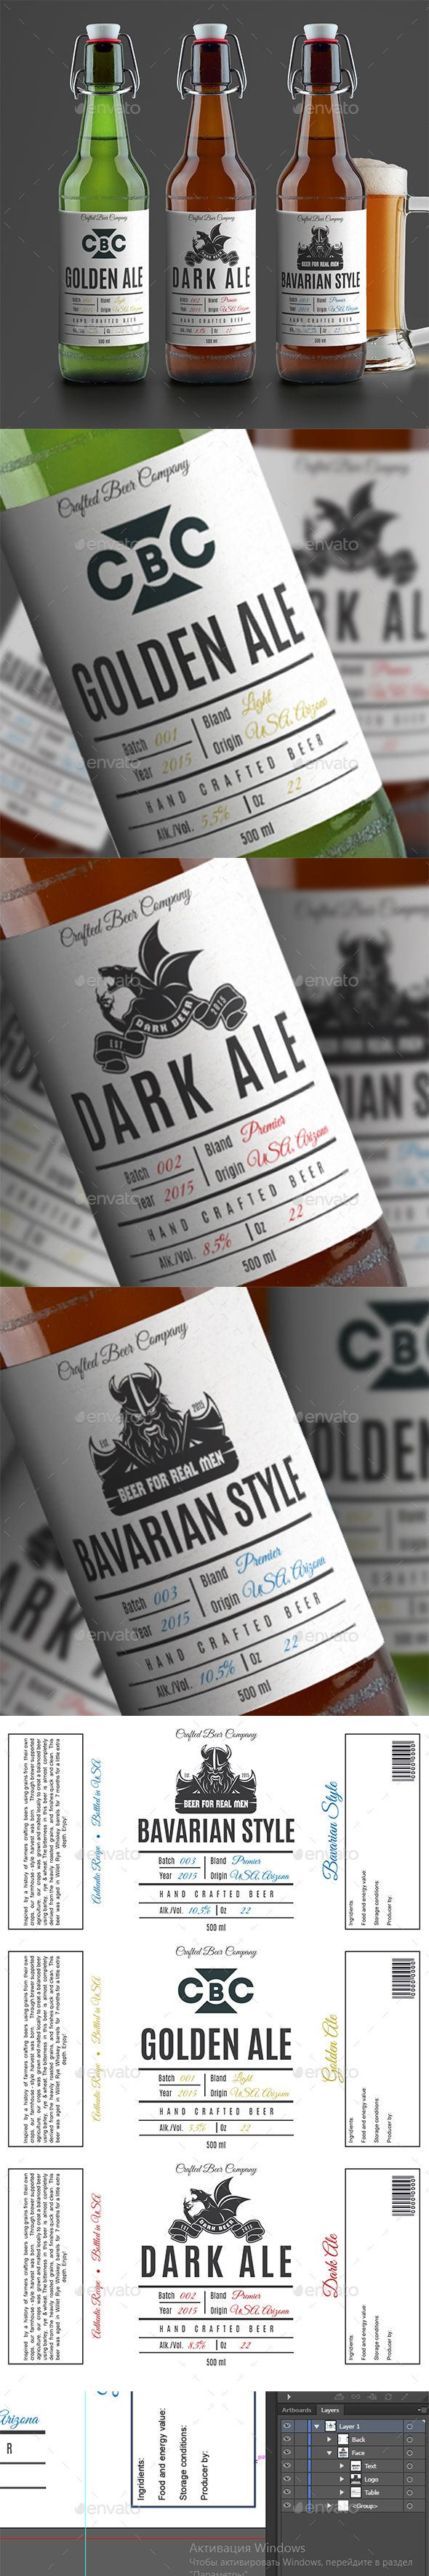 Beer Label - #Packaging Print Templates Download here: https://graphicriver.net/item/beer-label/15649926?ref=classicdesignp